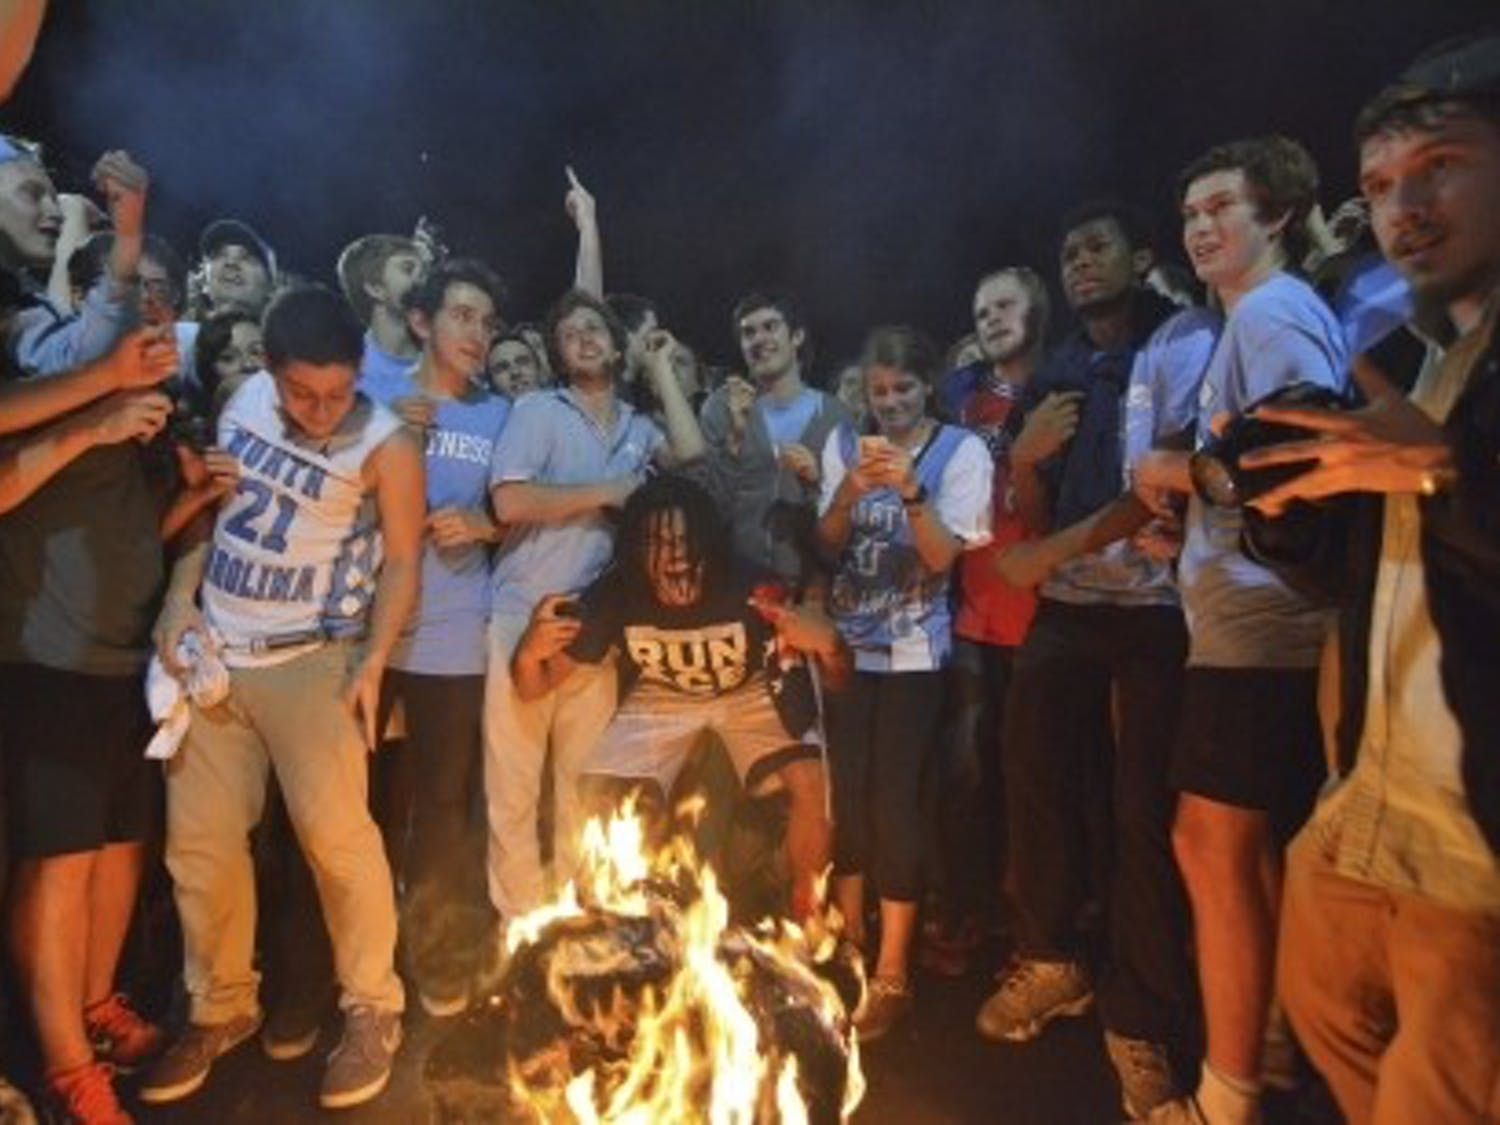 Excited fans jump over a bonfire on Franklin Street after North Carolina beats Duke in men's basketball.